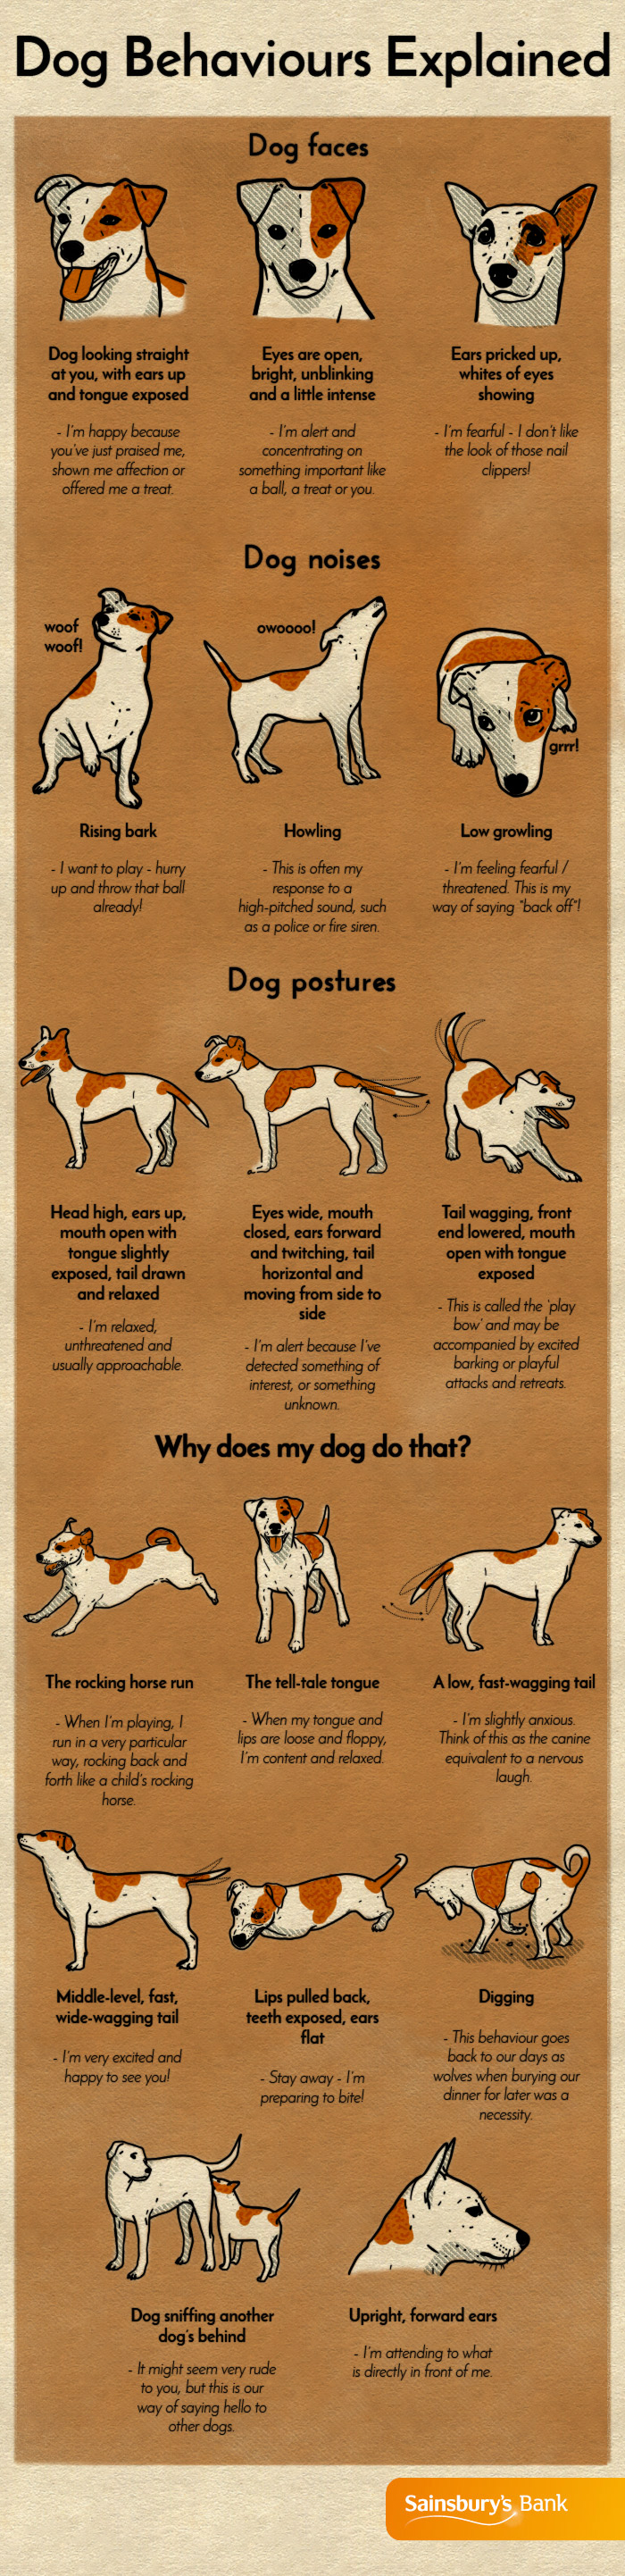 dog-behaviours